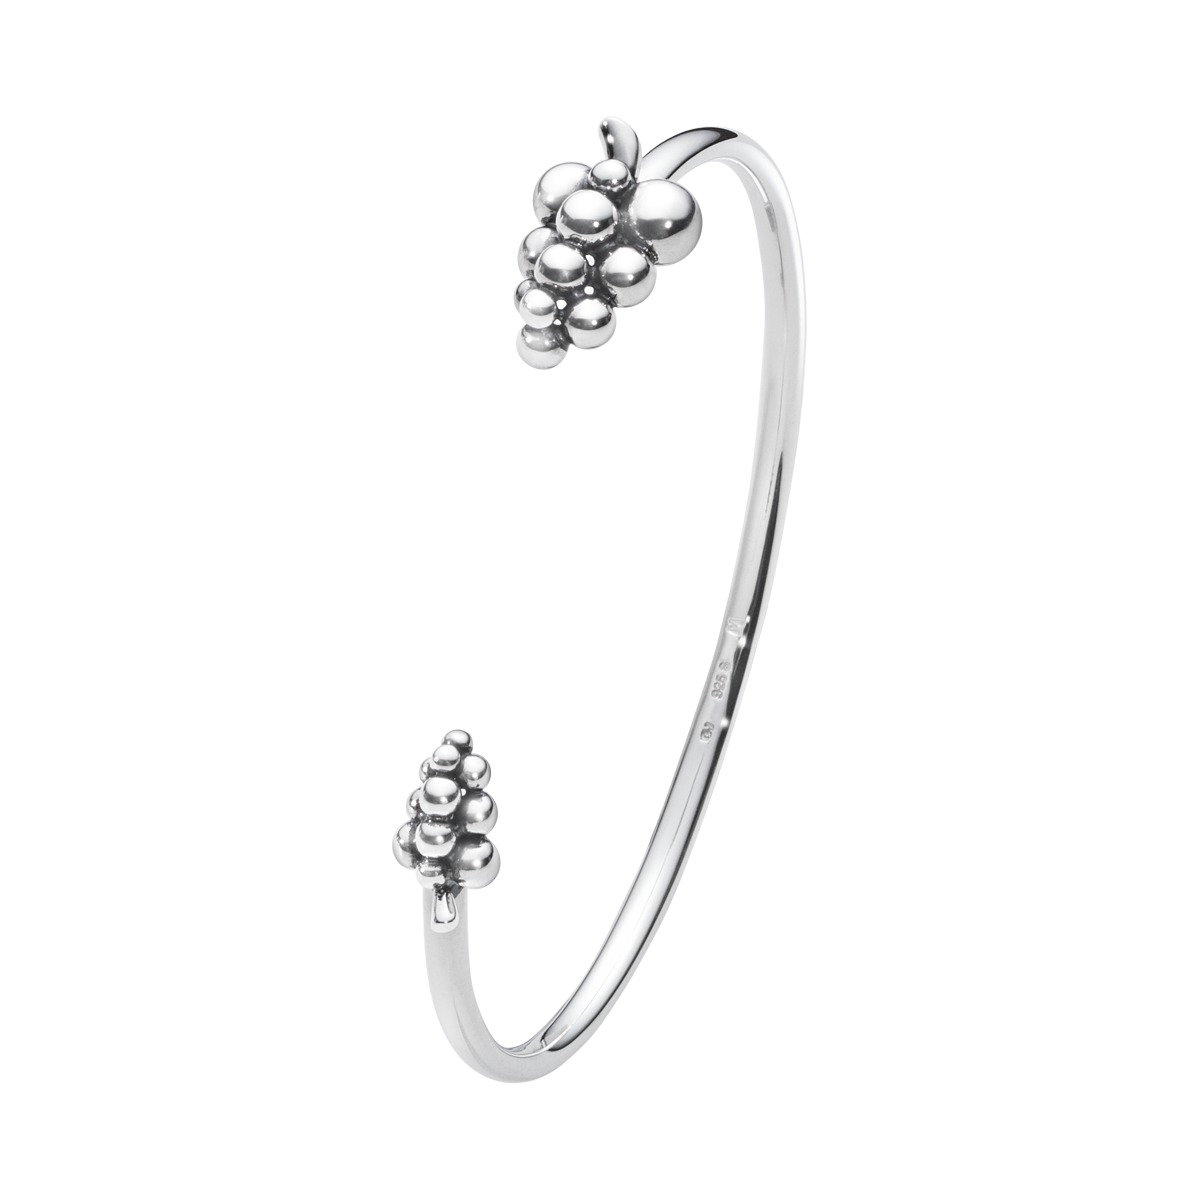 Georg Jensen MOONLIGHT GRAPES armring - 3531195 Armring størrelse M